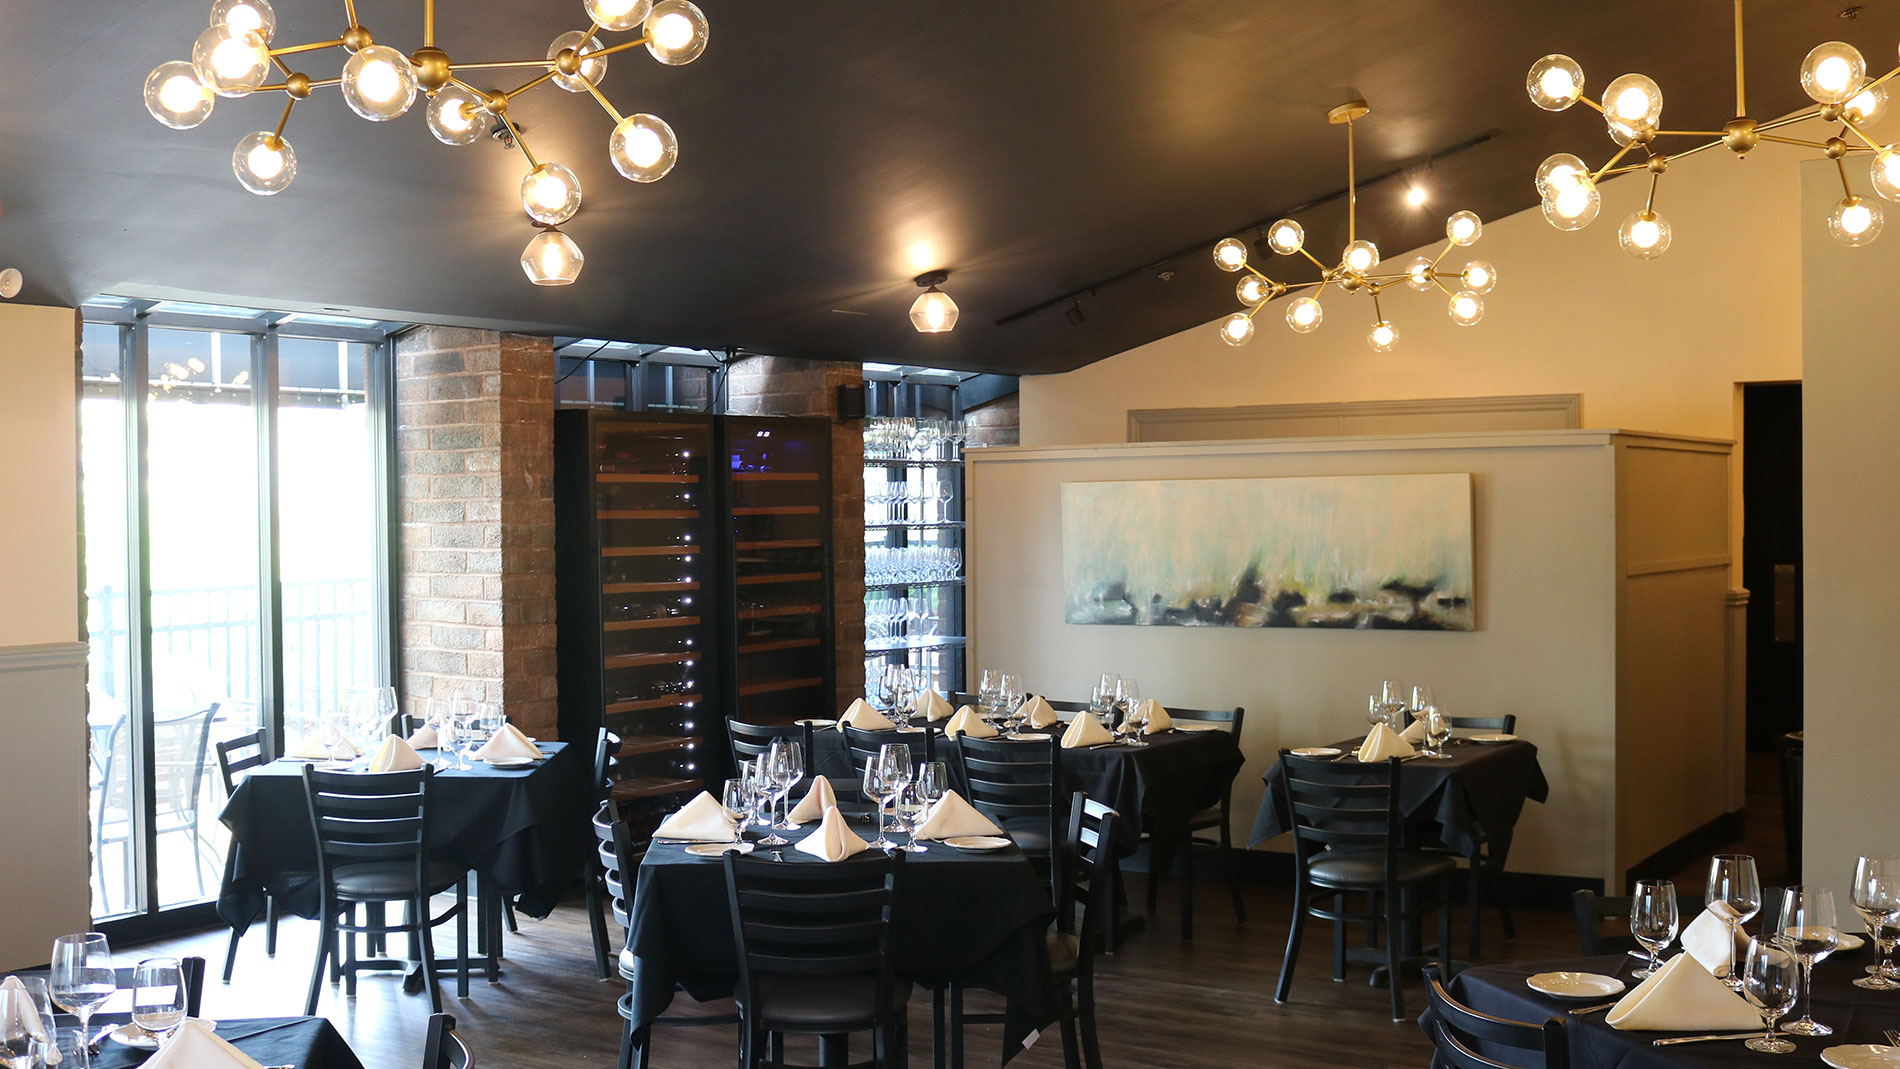 First Look: Timothy's The Restaurant in Creve Coeur